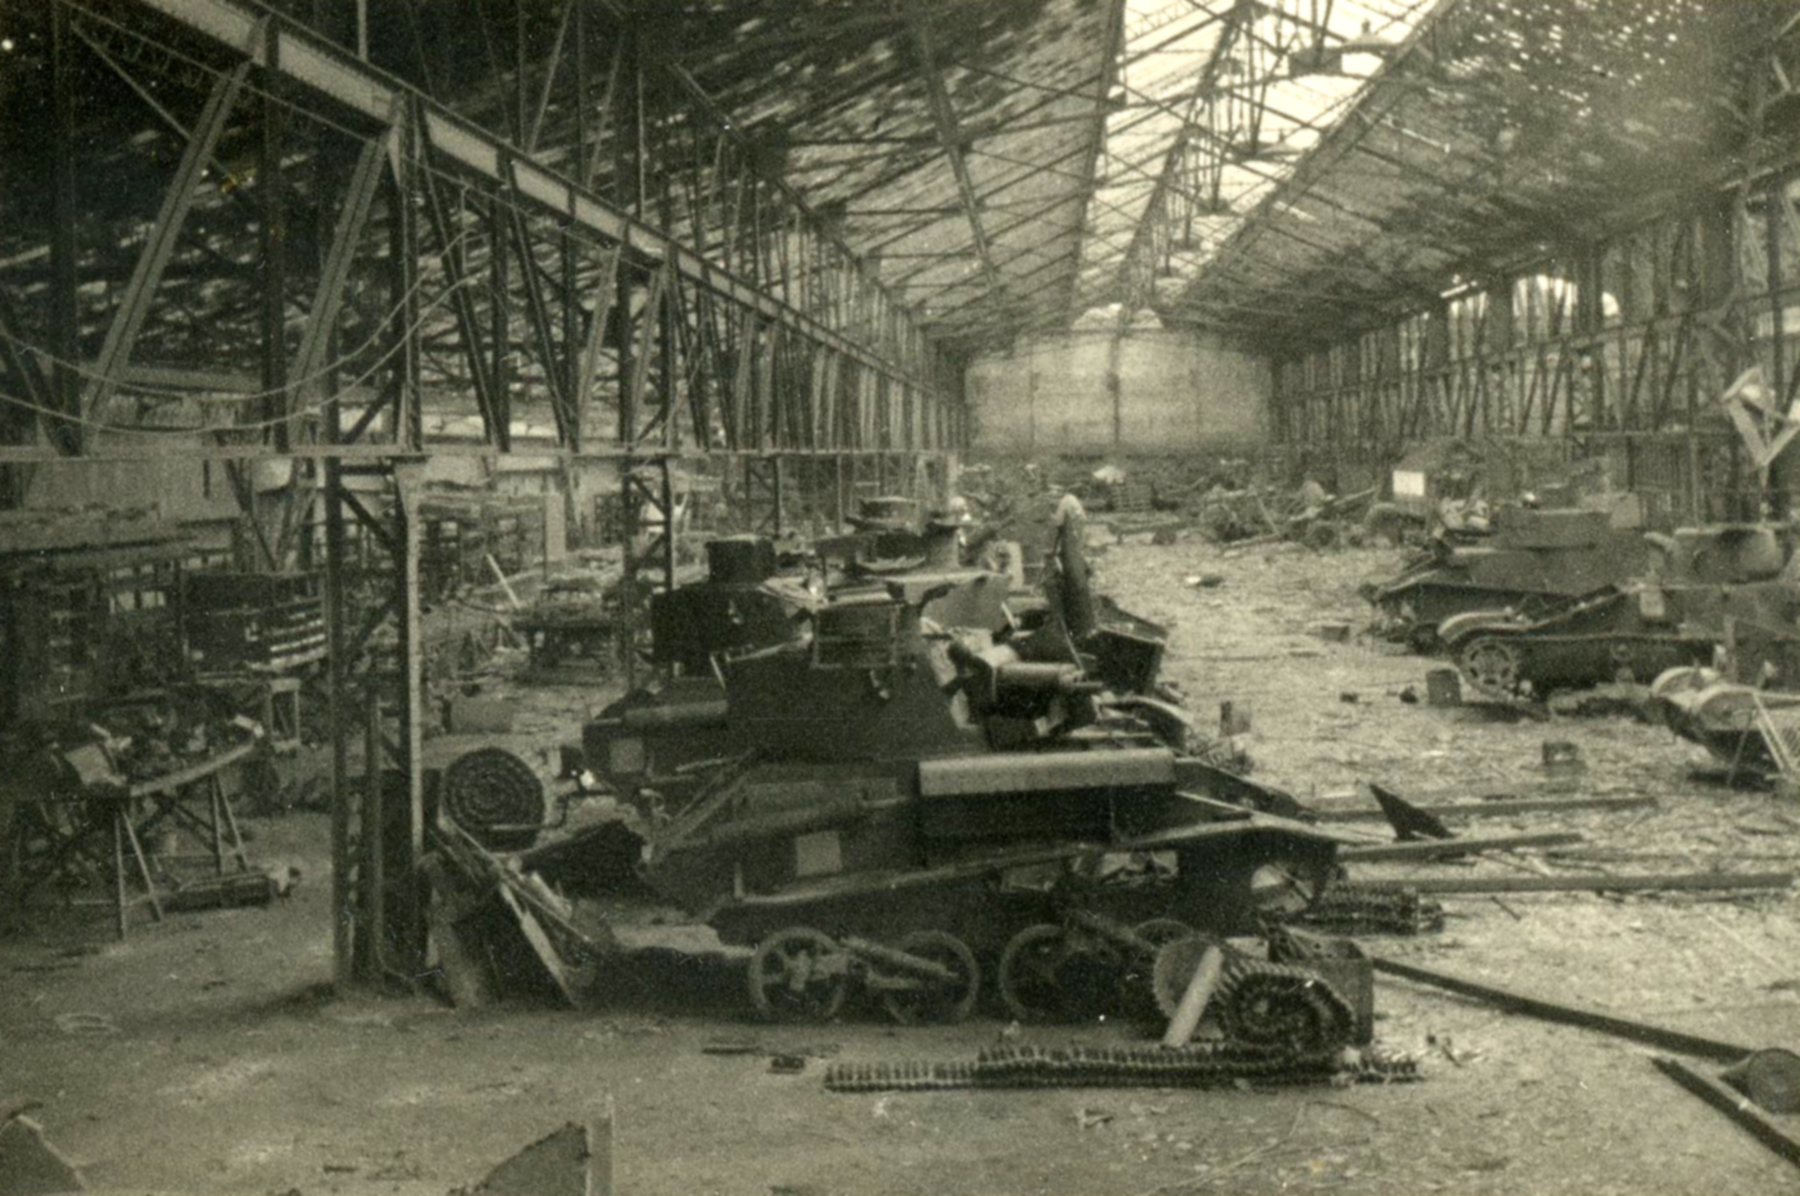 Vickers light tank destroyed at a repair depo battle of France 1940 ebay 01